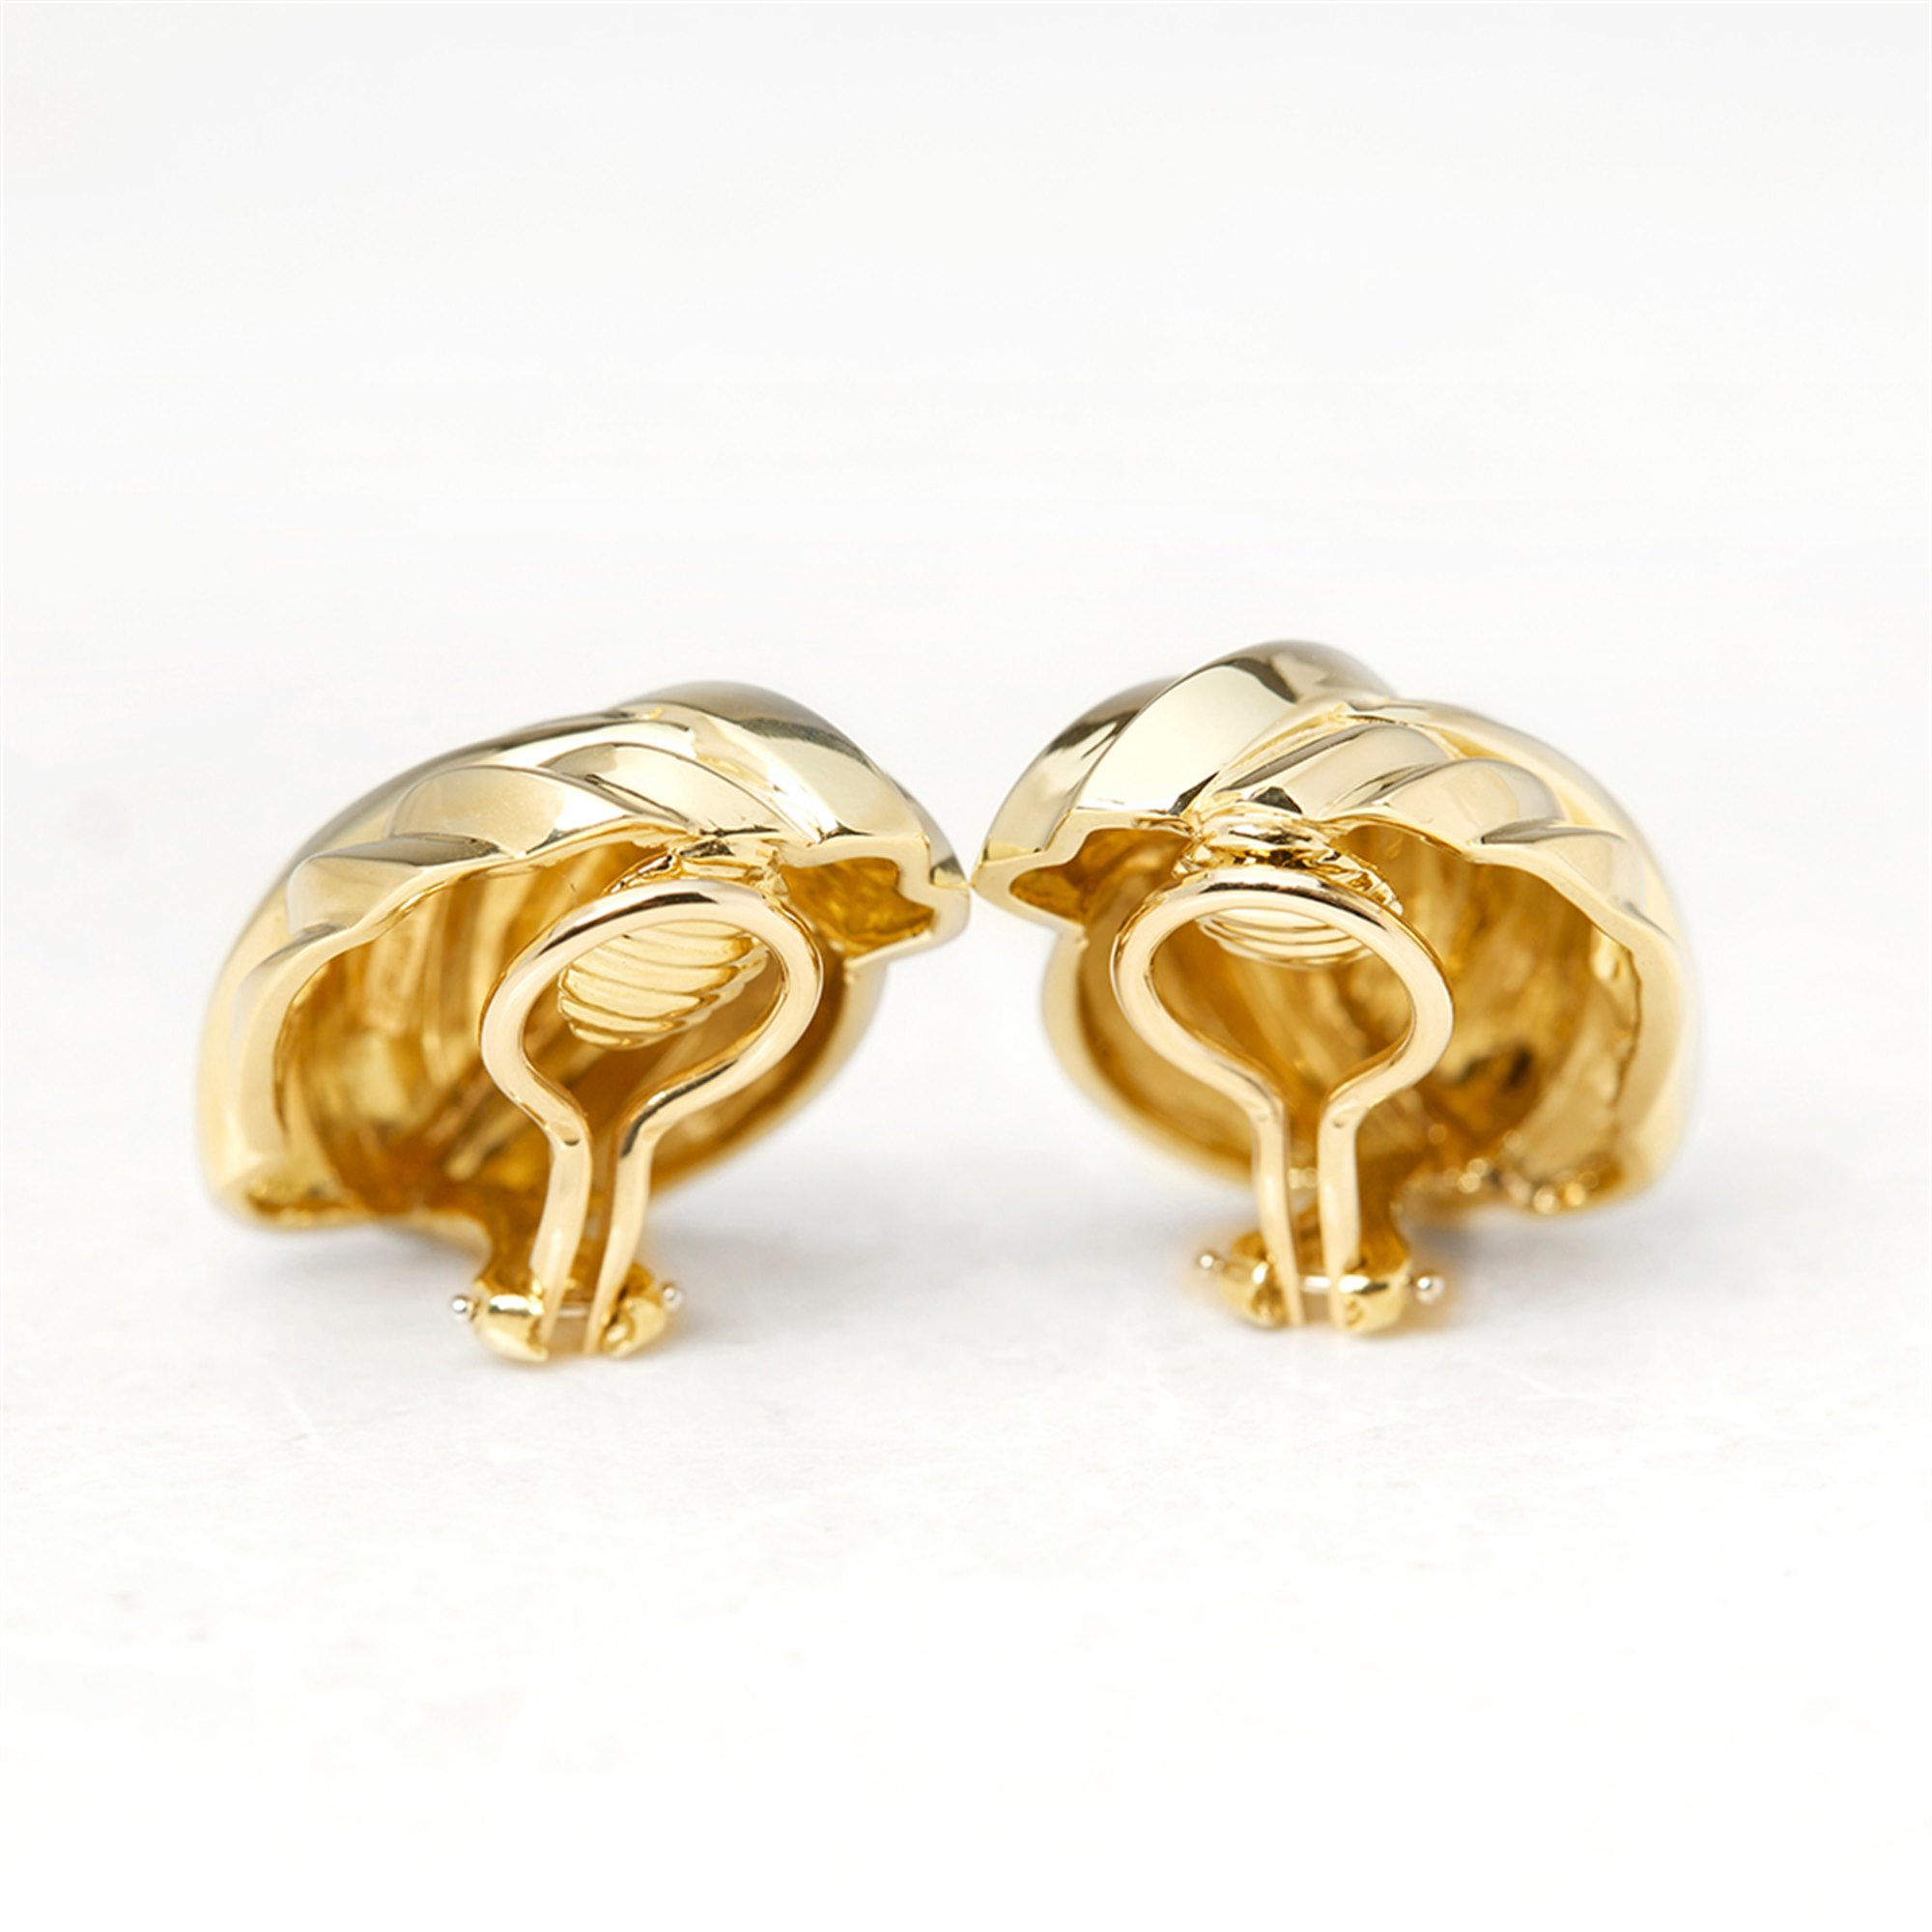 Tiffany & Co. 18k Yellow Gold Shell Design Clip-On Earrings